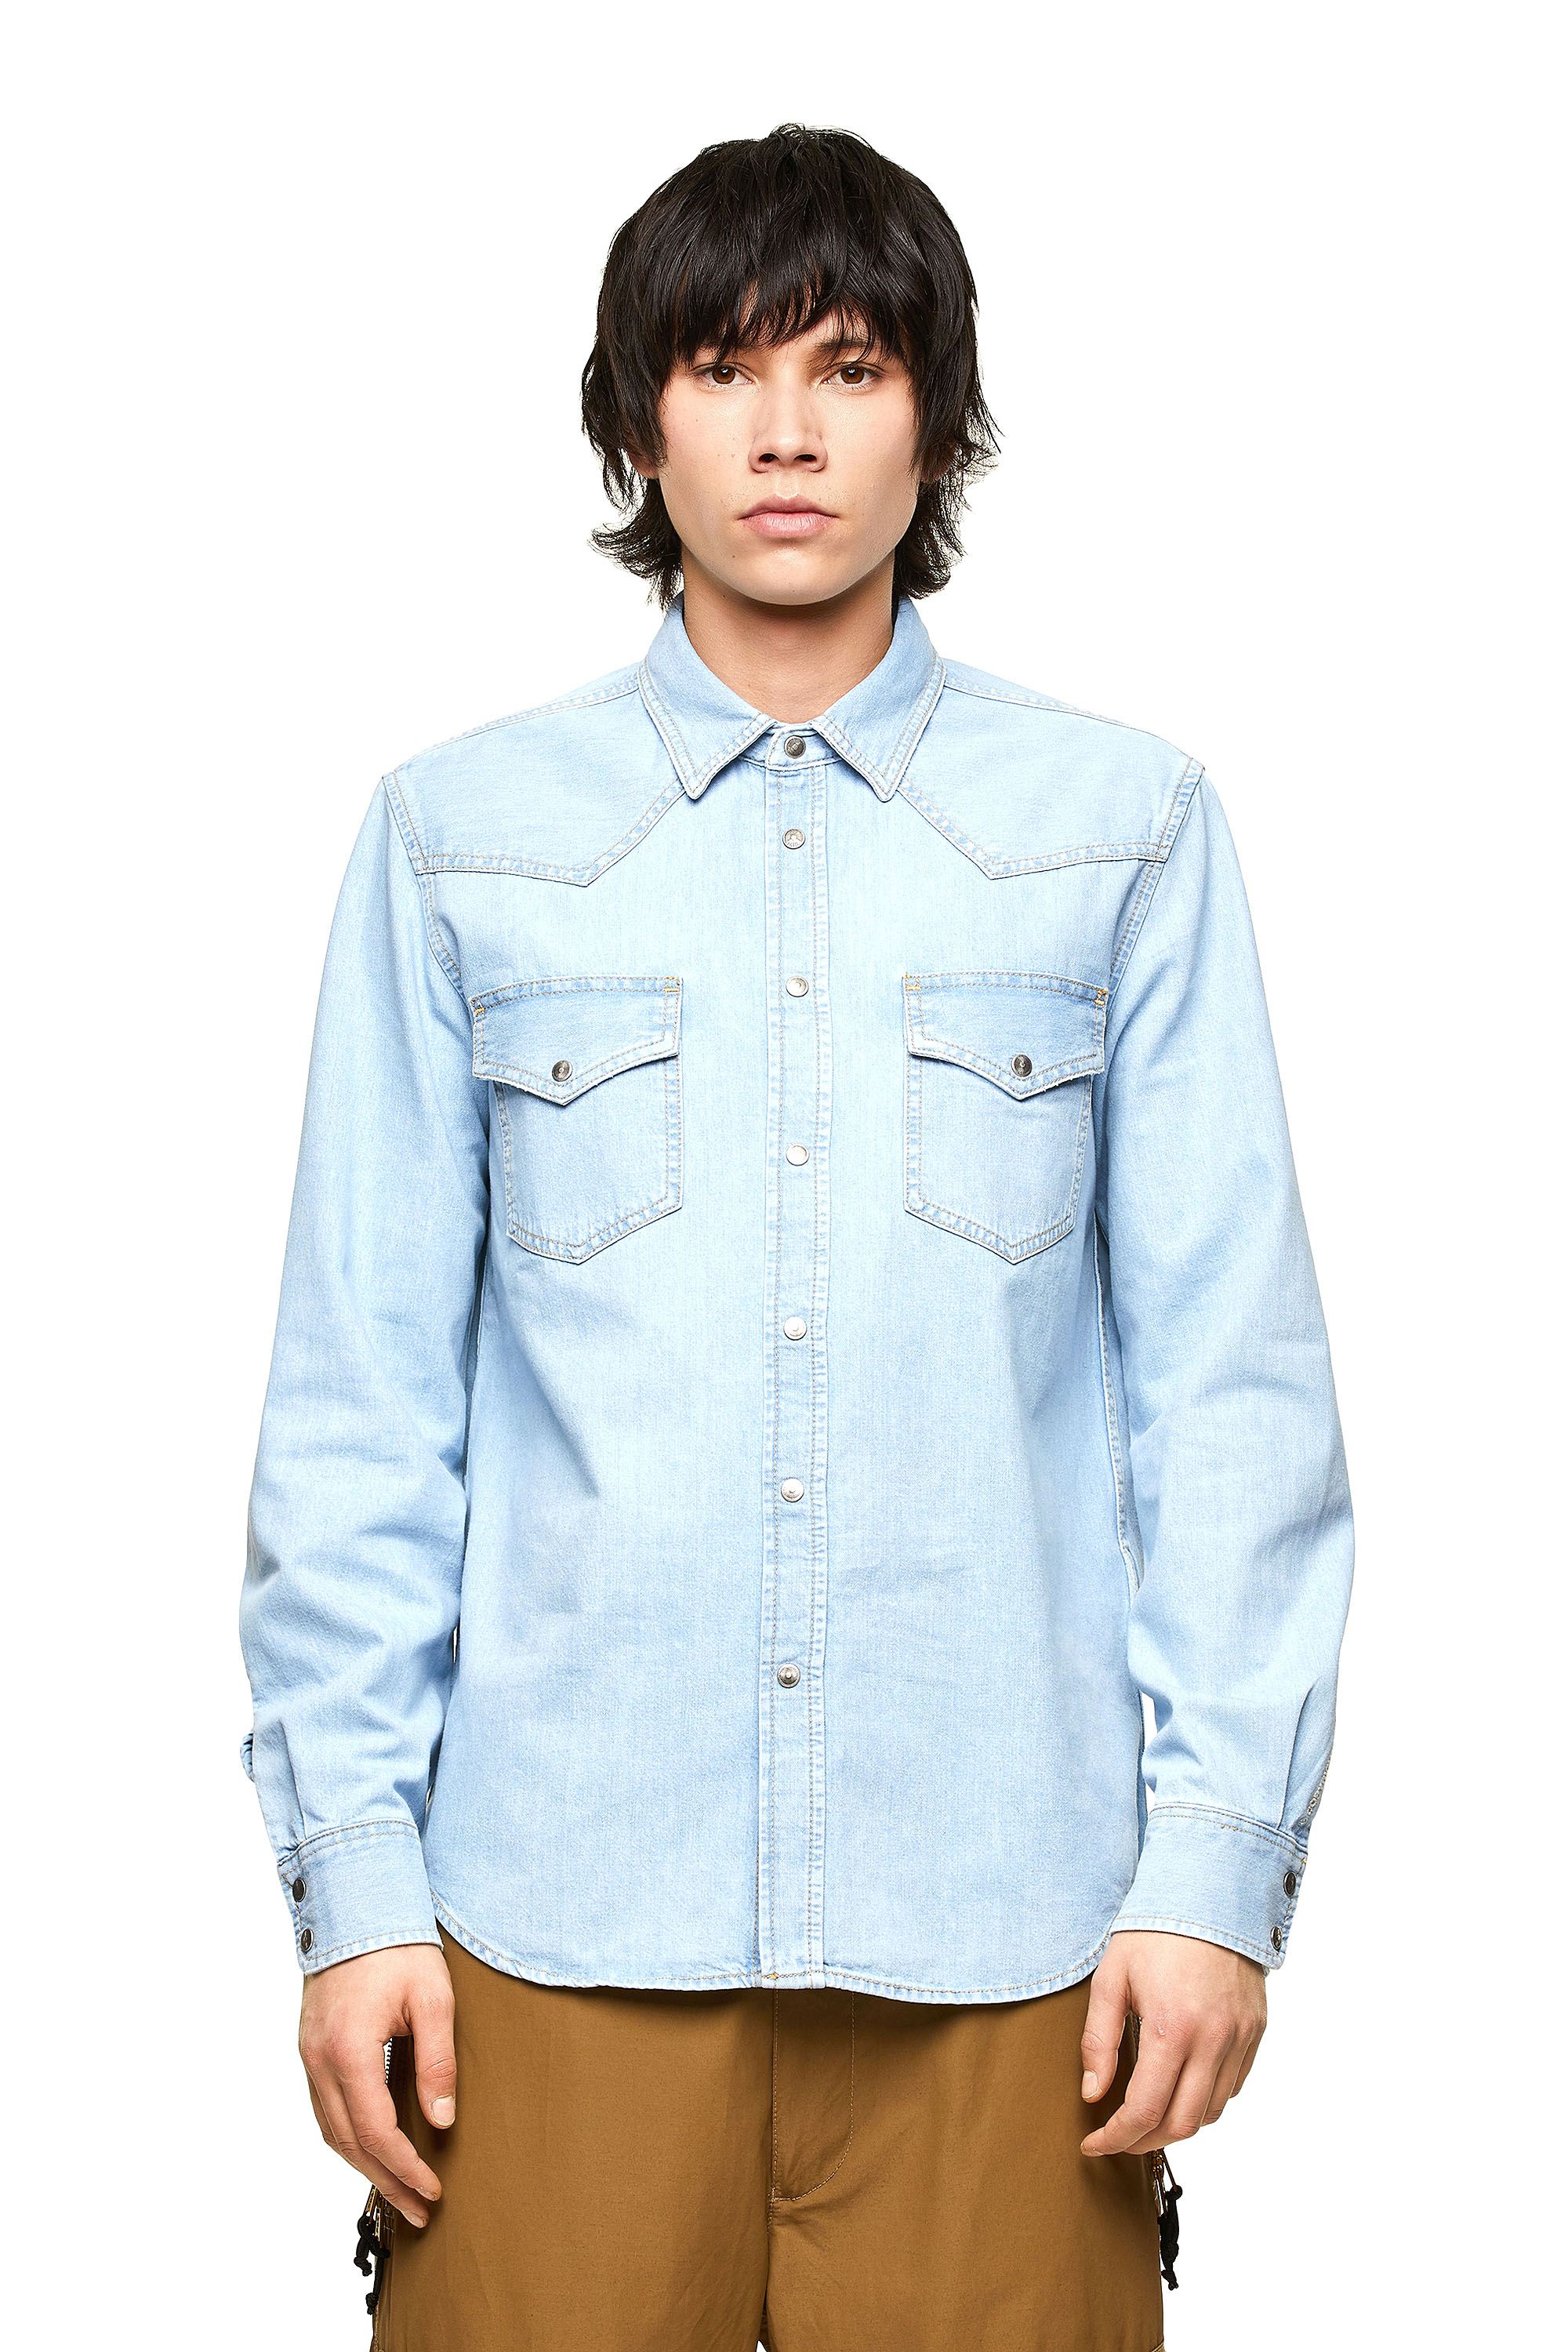 Diesel - D-EAST-P1, Light Blue - Denim Shirts - Image 1